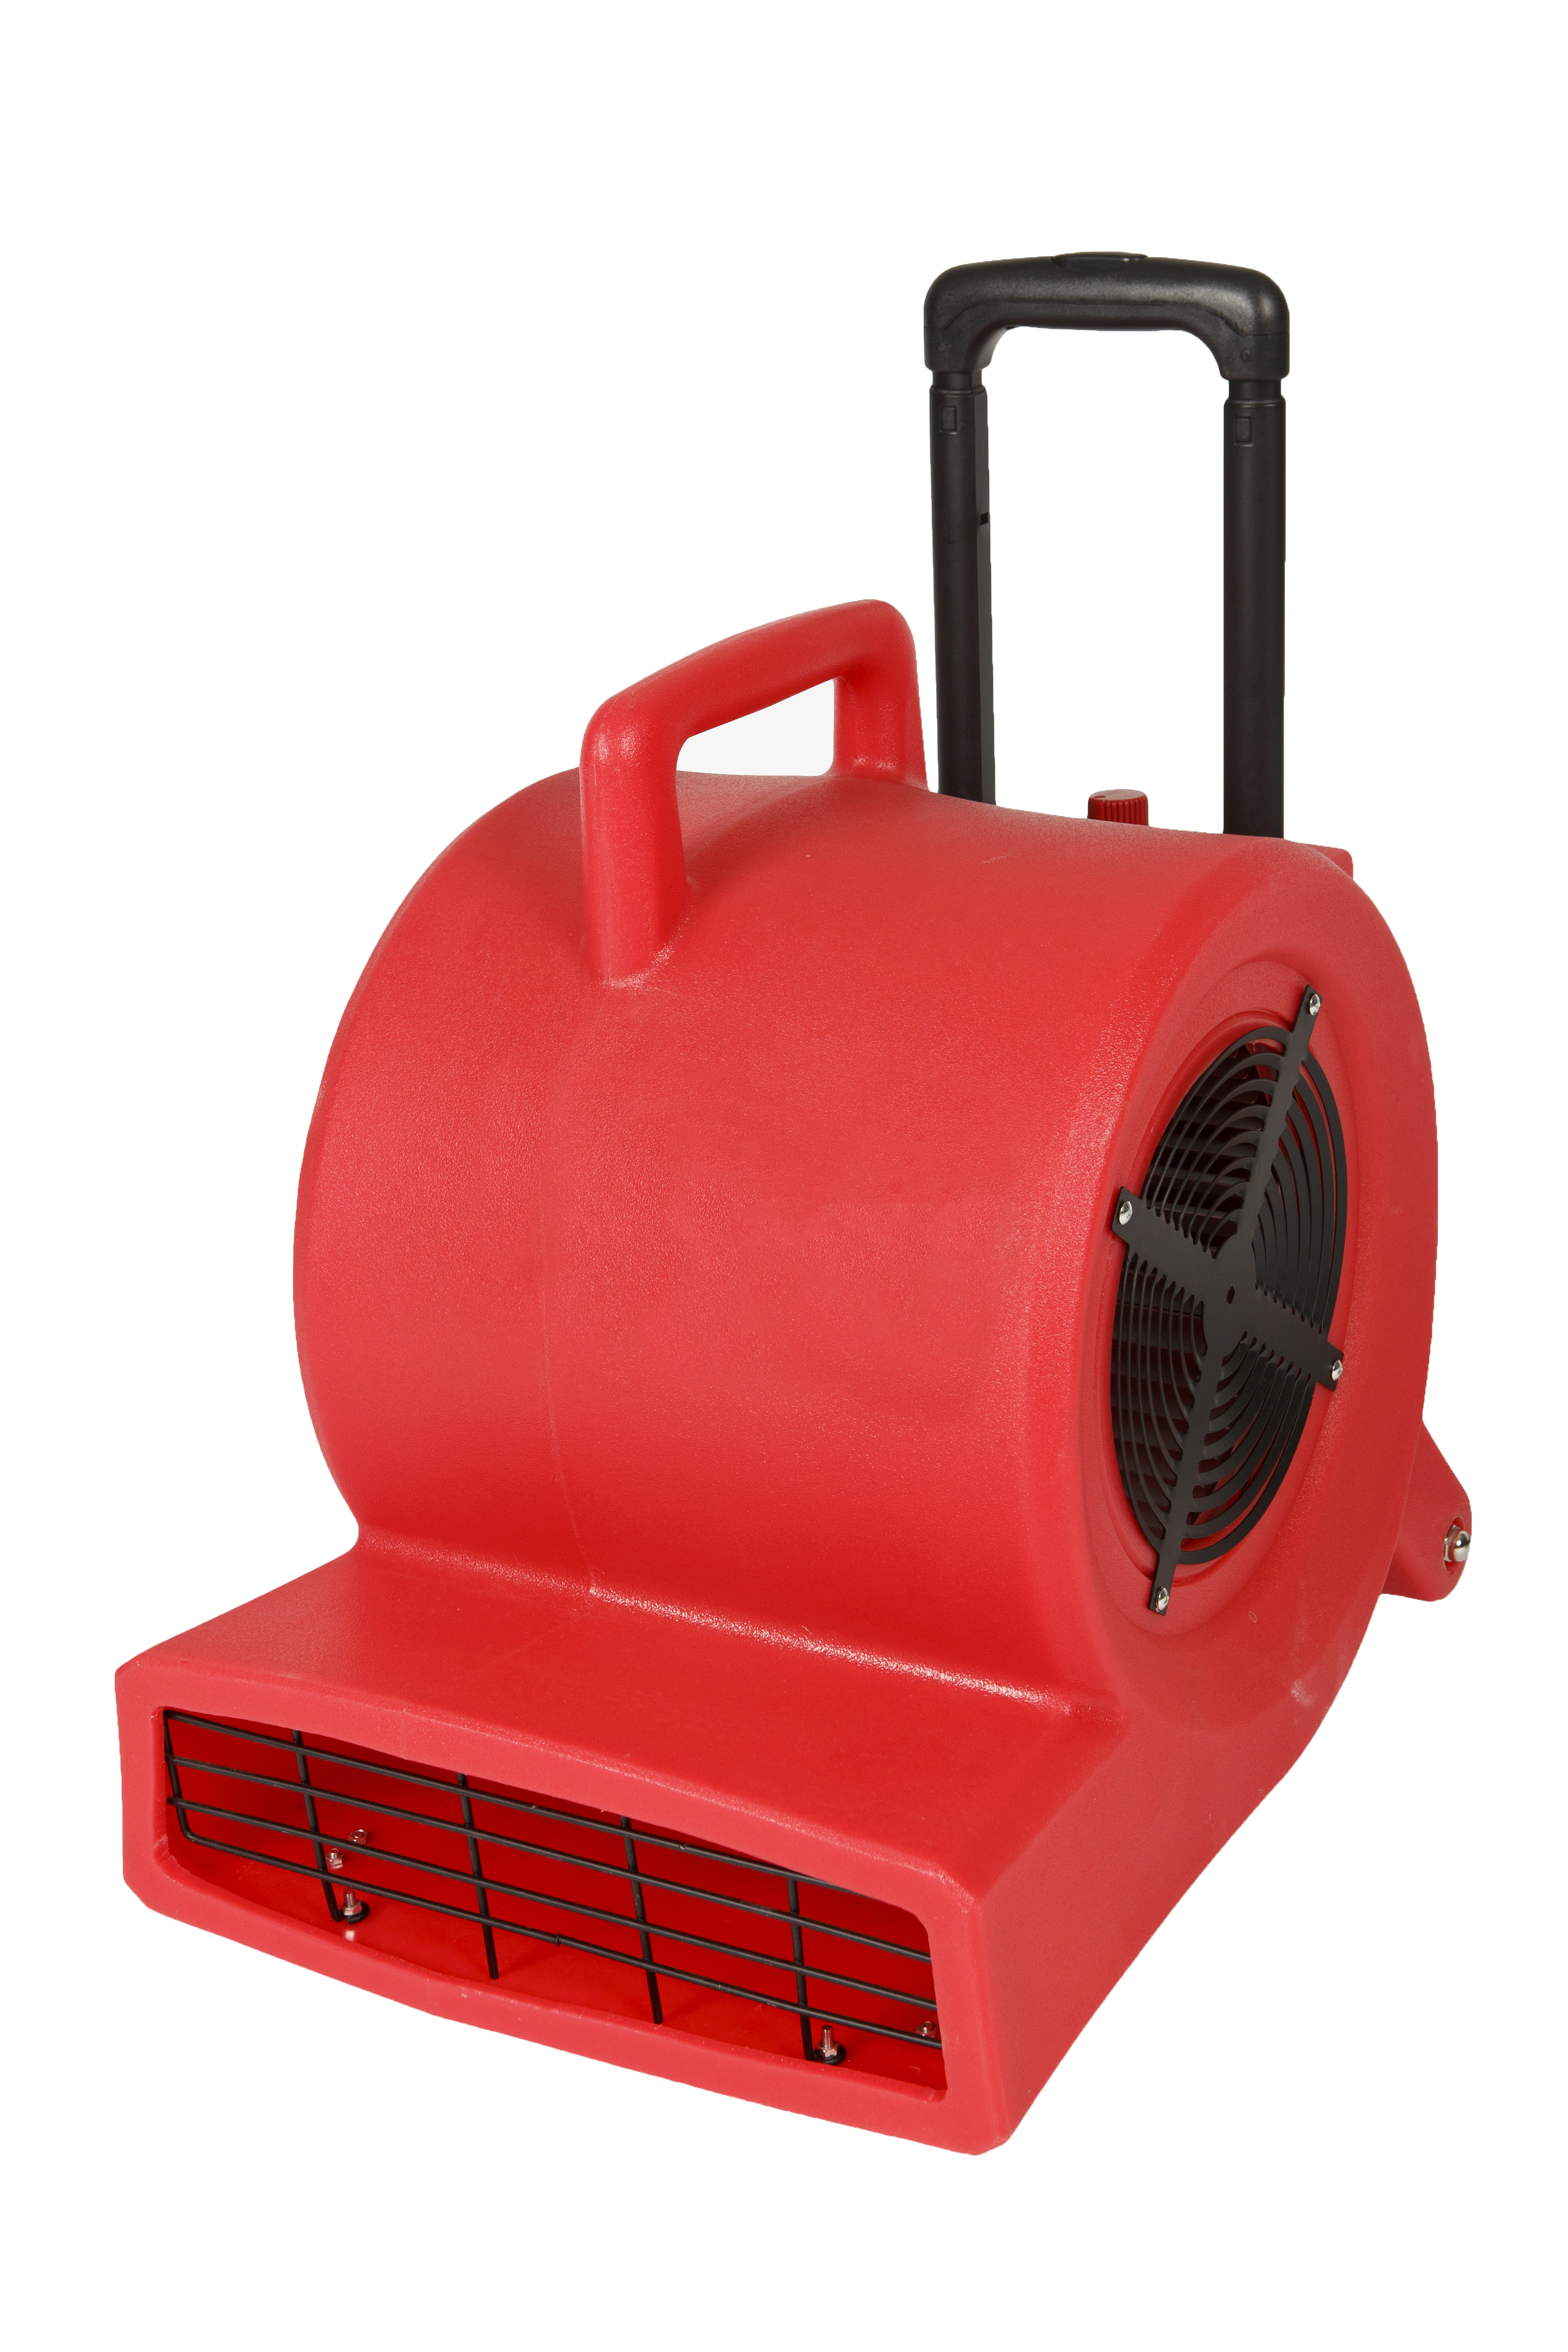 Hectoserve Carpet Blower